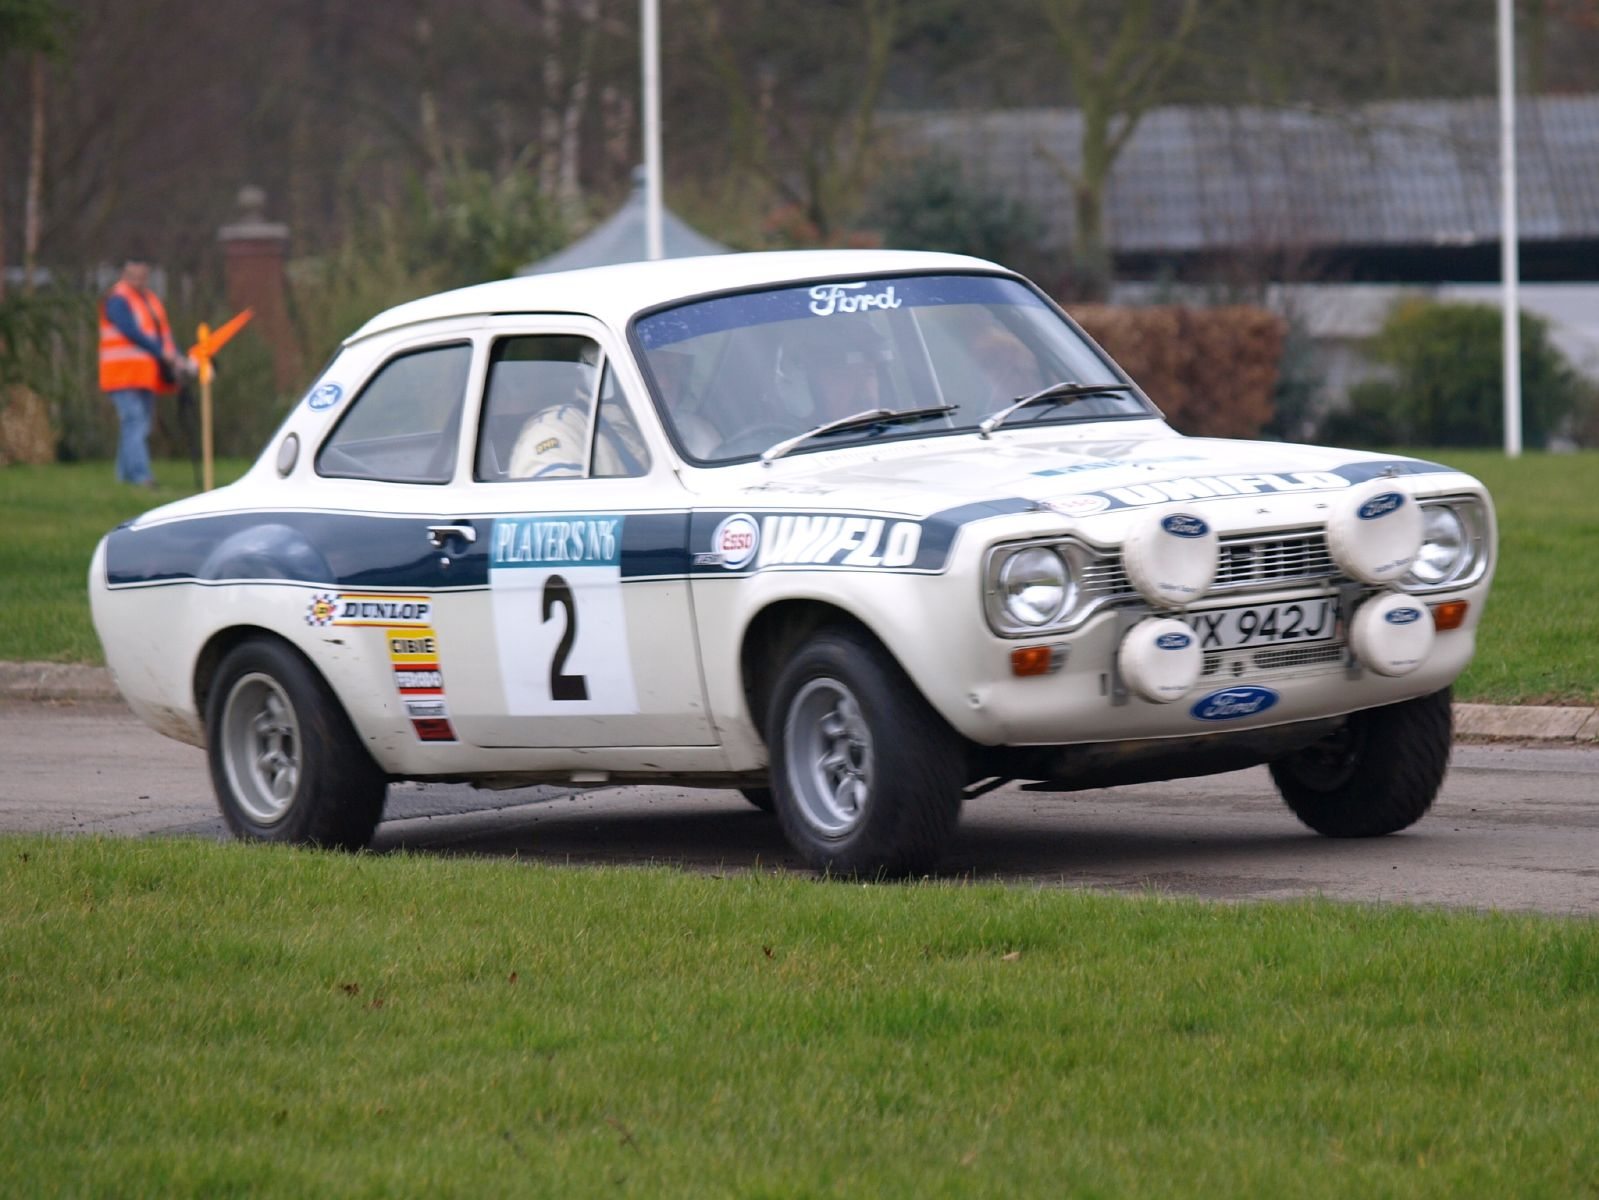 File:Ford Escort RS1600 - Race Retro 2008 03.jpg - Wikimedia Commons